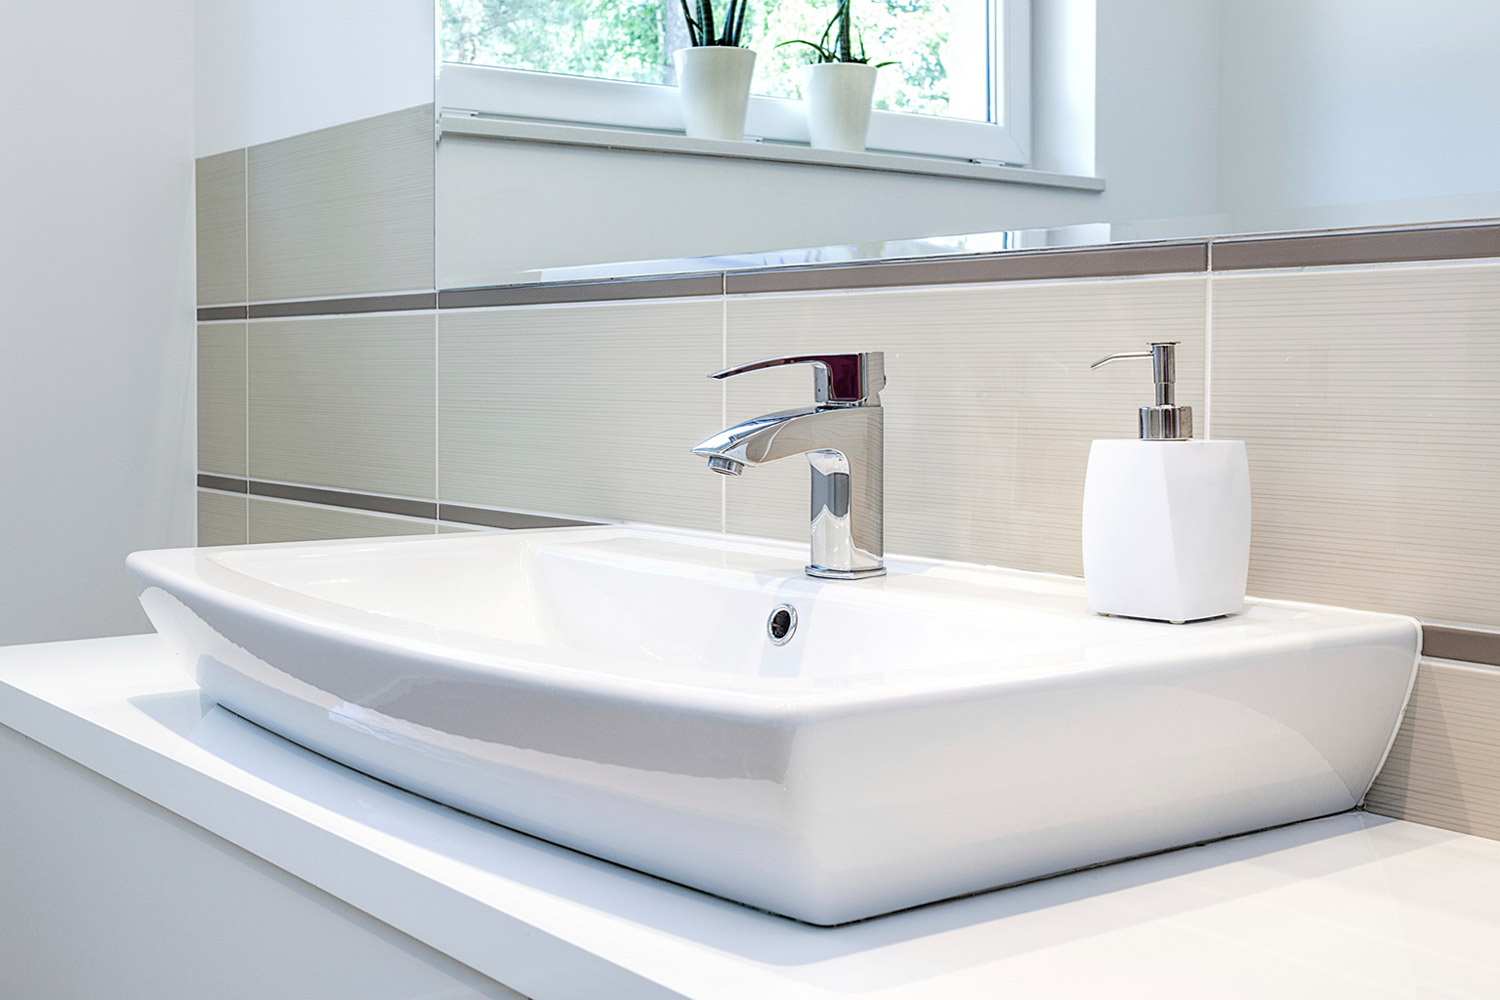 Vessel Sink Pros and Cons